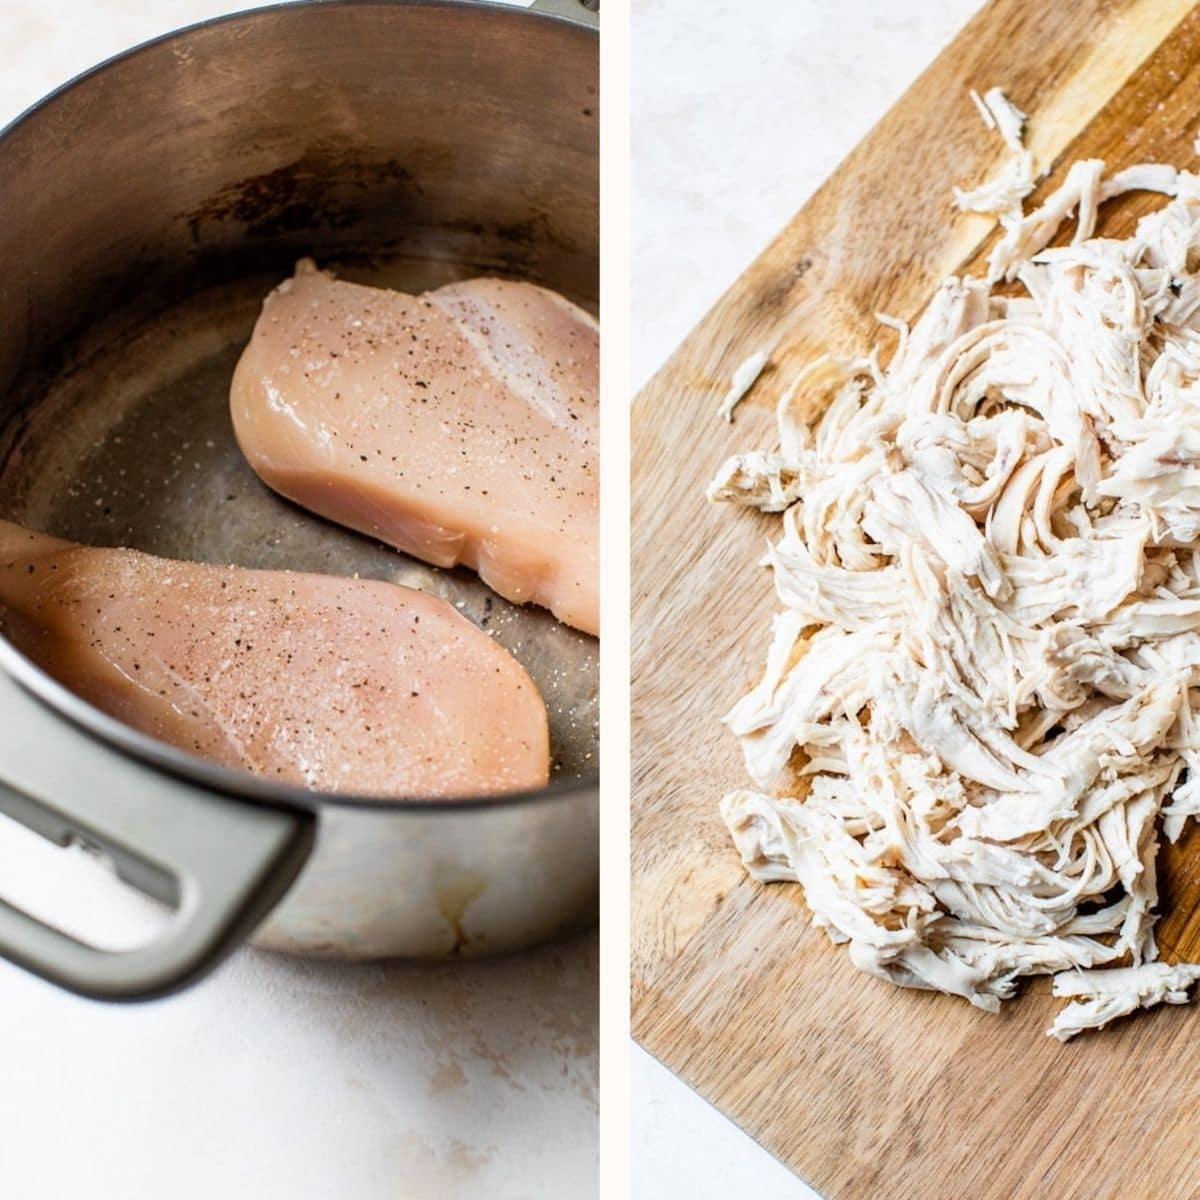 raw chicken breasts in a saucepan and shredded cooked chicken on a cutting board